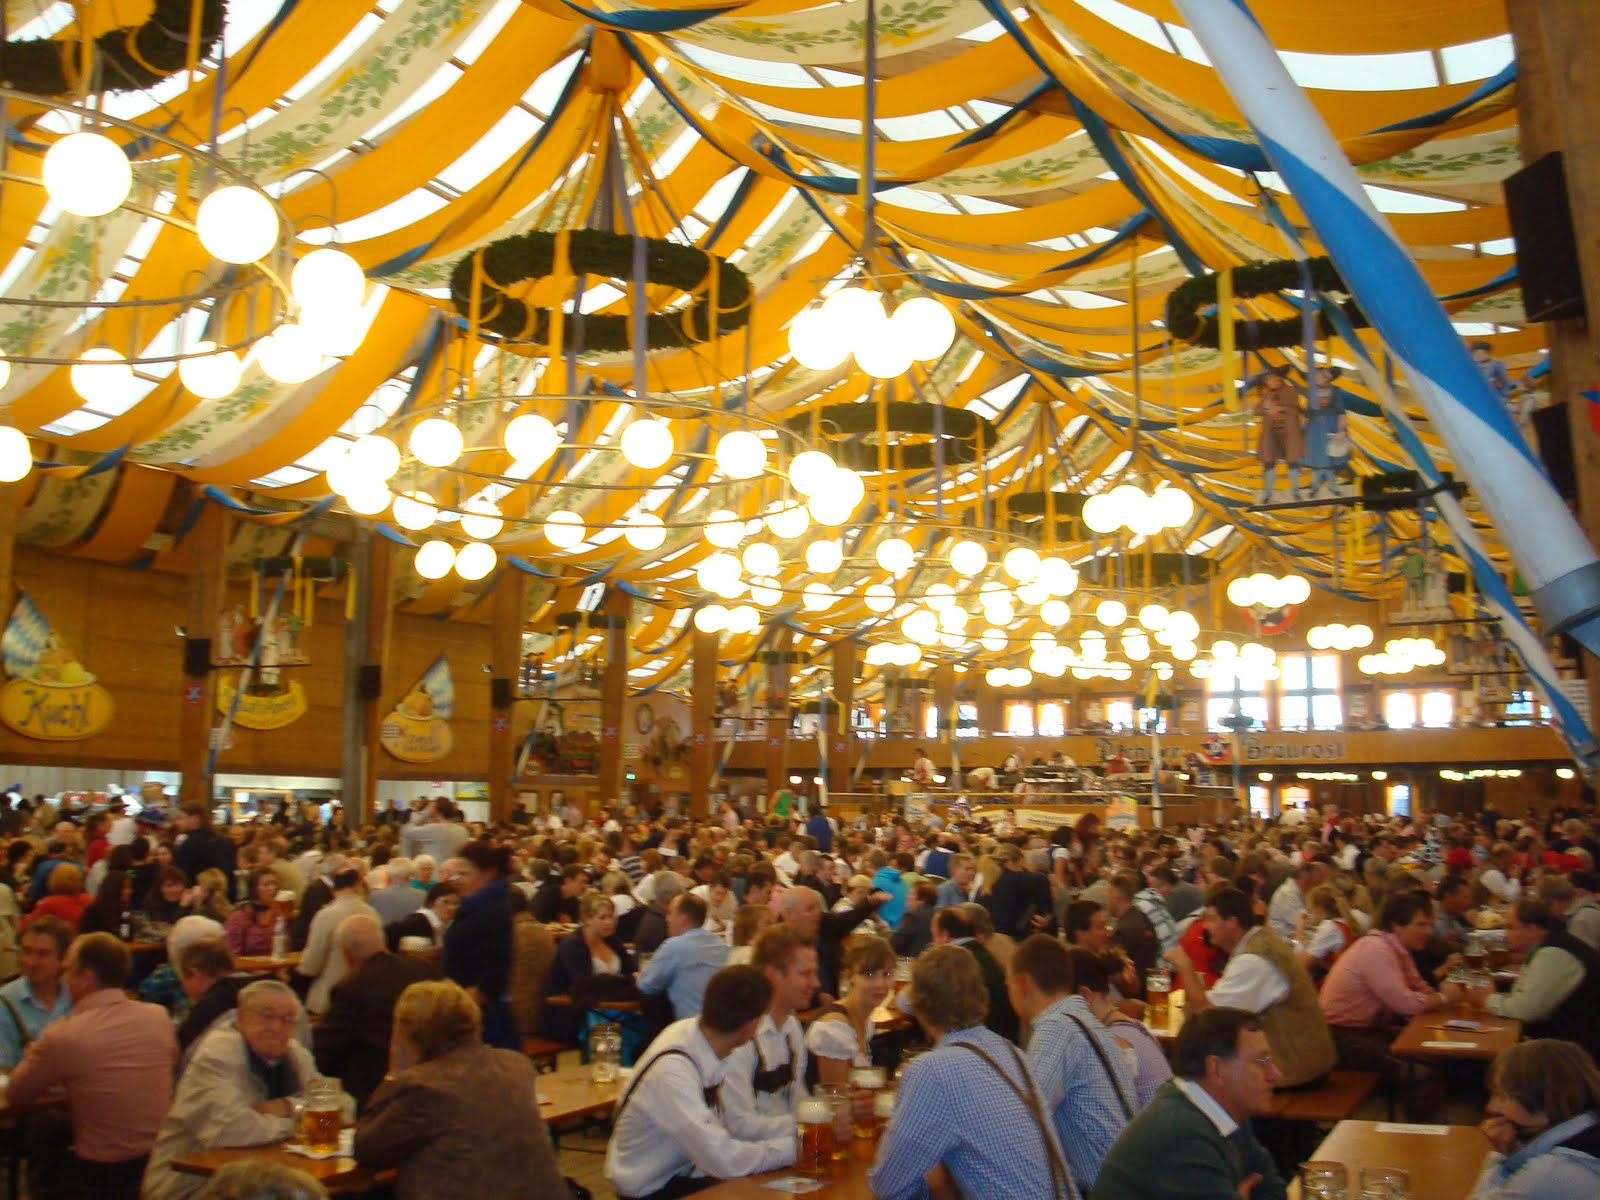 The Winzerer Fähndl holds 8450 people inside and sits 2450 outside making it the largest of the Oktoberfest tents. They serve Paulaner beer here. & ROWDY IN GERMANY: Oktoberfest Tents